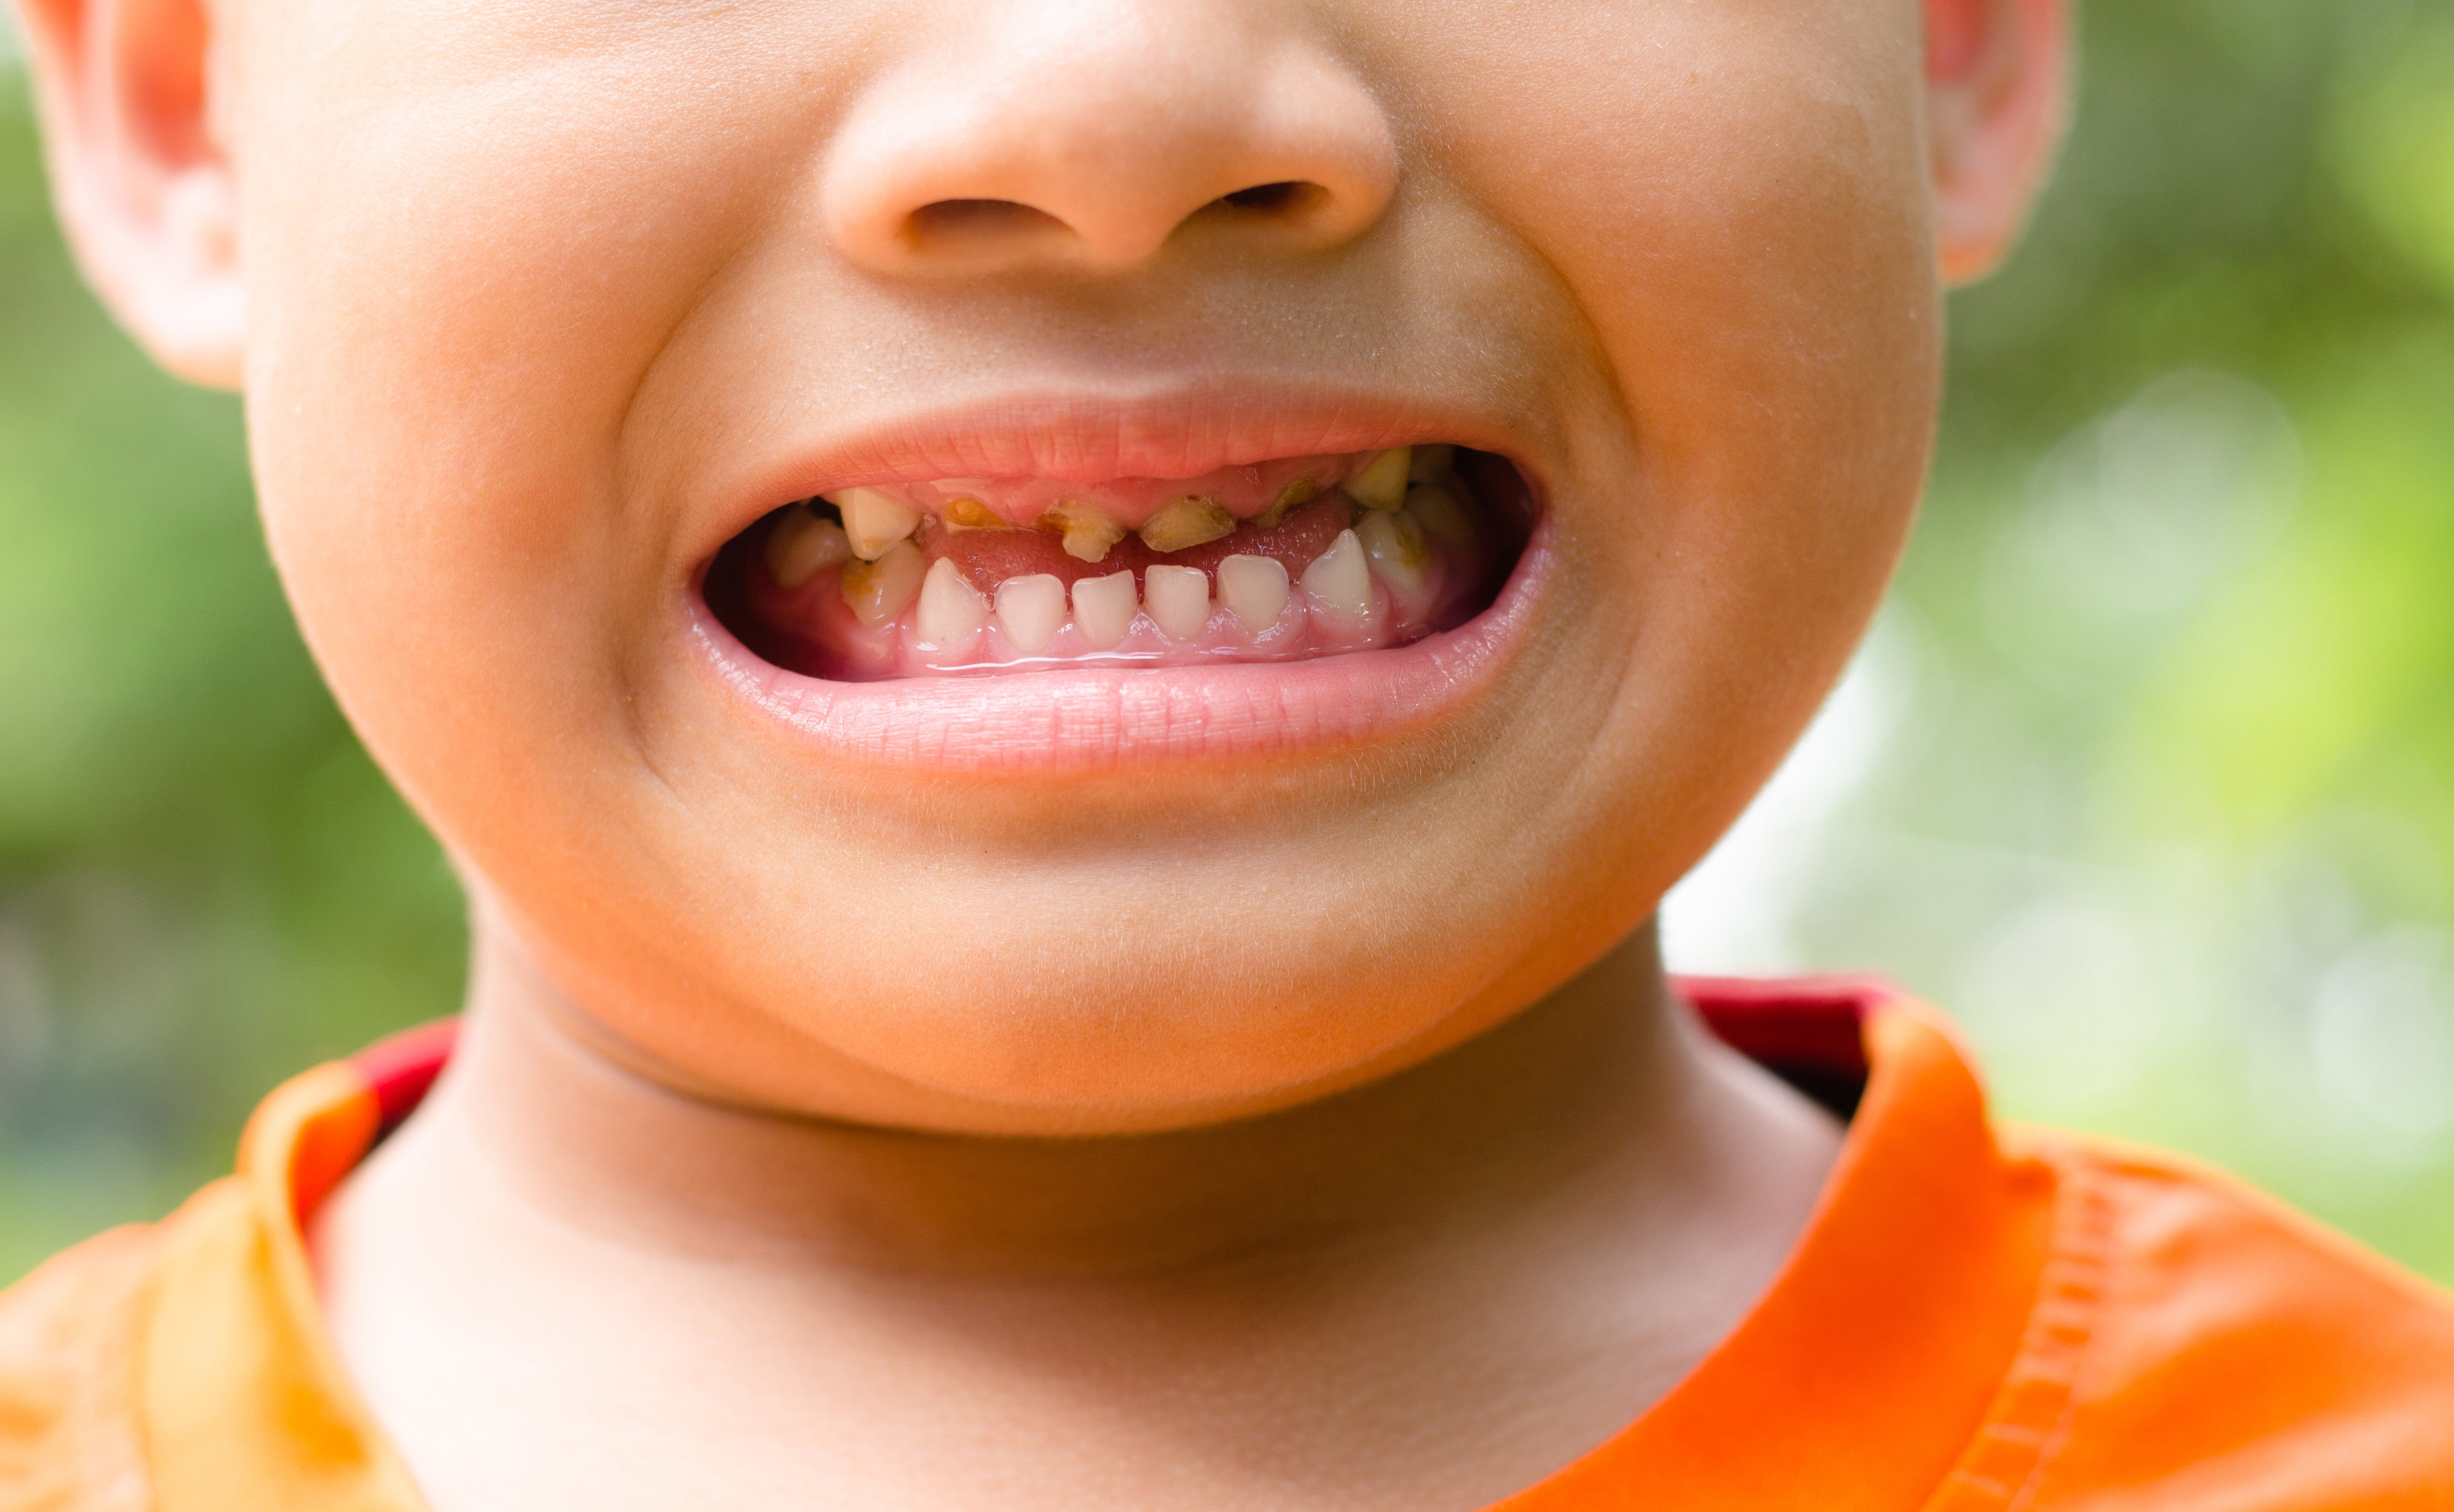 It's Children's Dental Health Month – Use The New Secret Weapon For Parents In The Battle Against Kids' Tooth Decay